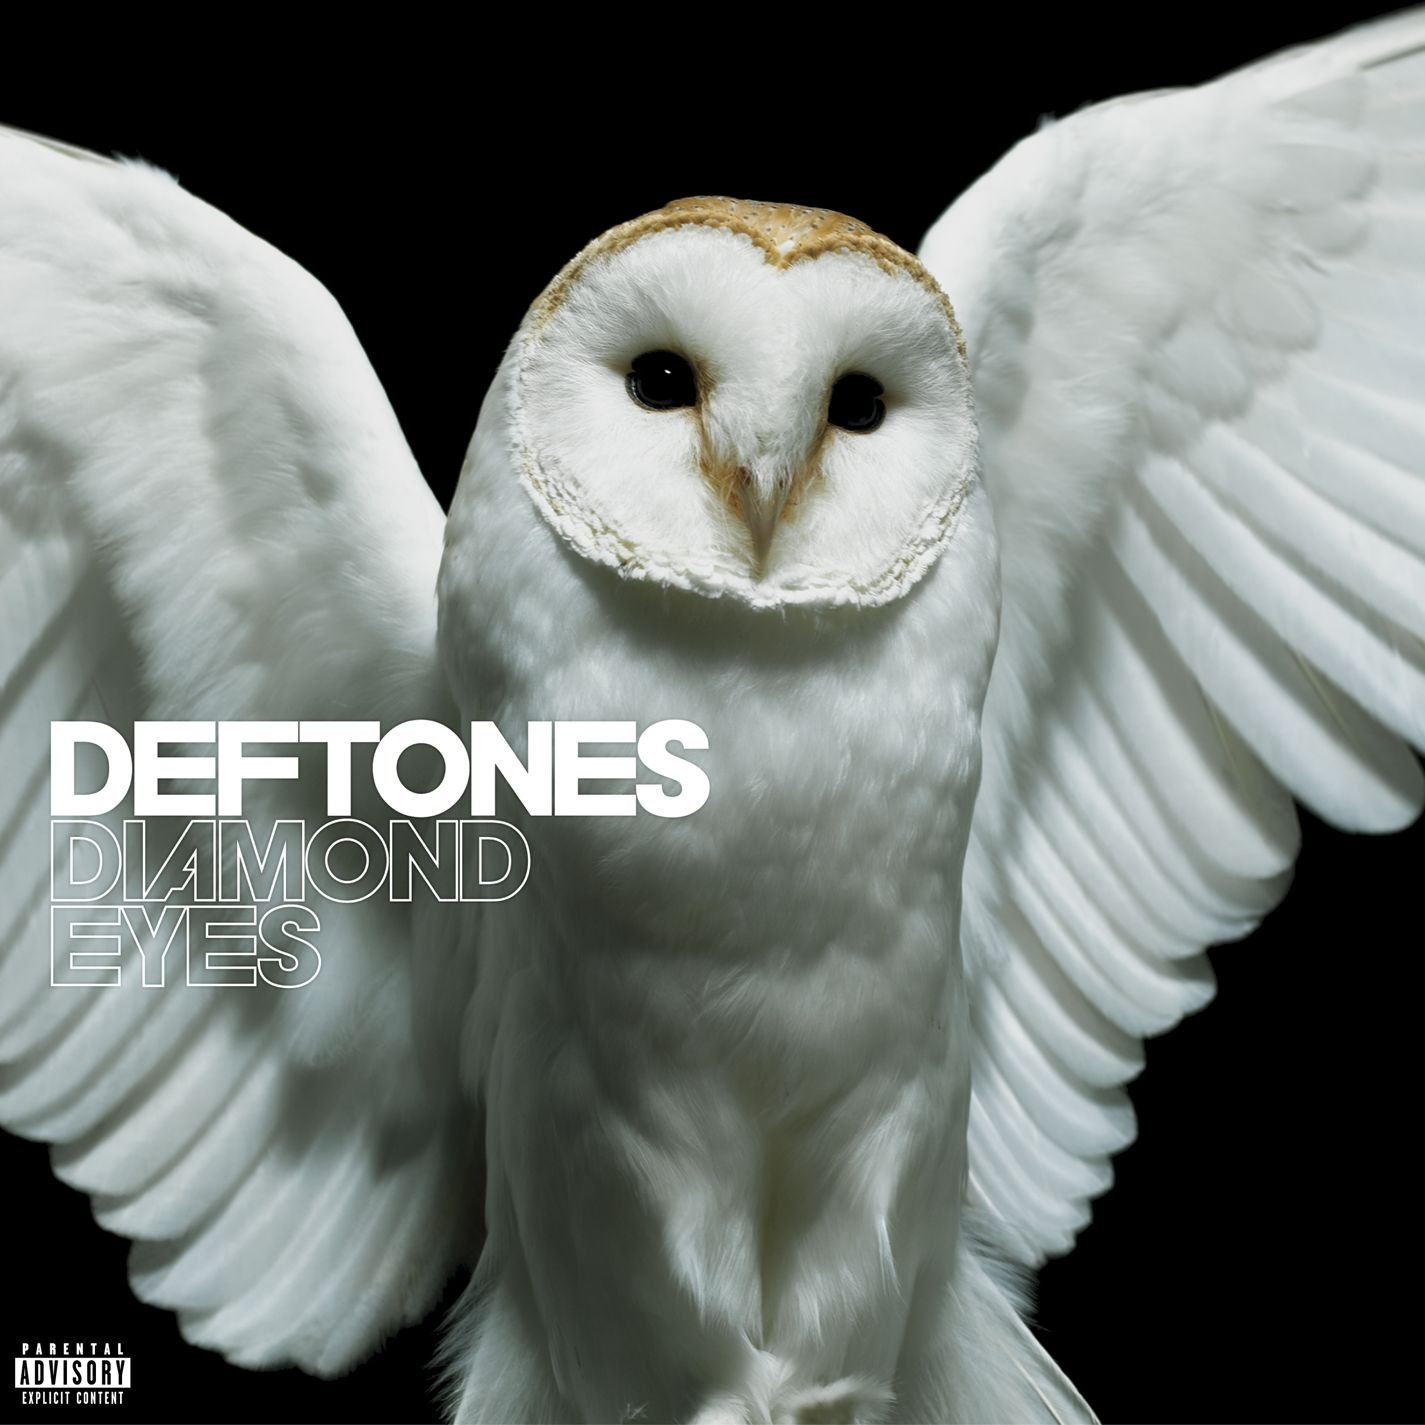 And The Band Plays On: Ten Years of Deftones' 'Diamond Eyes'